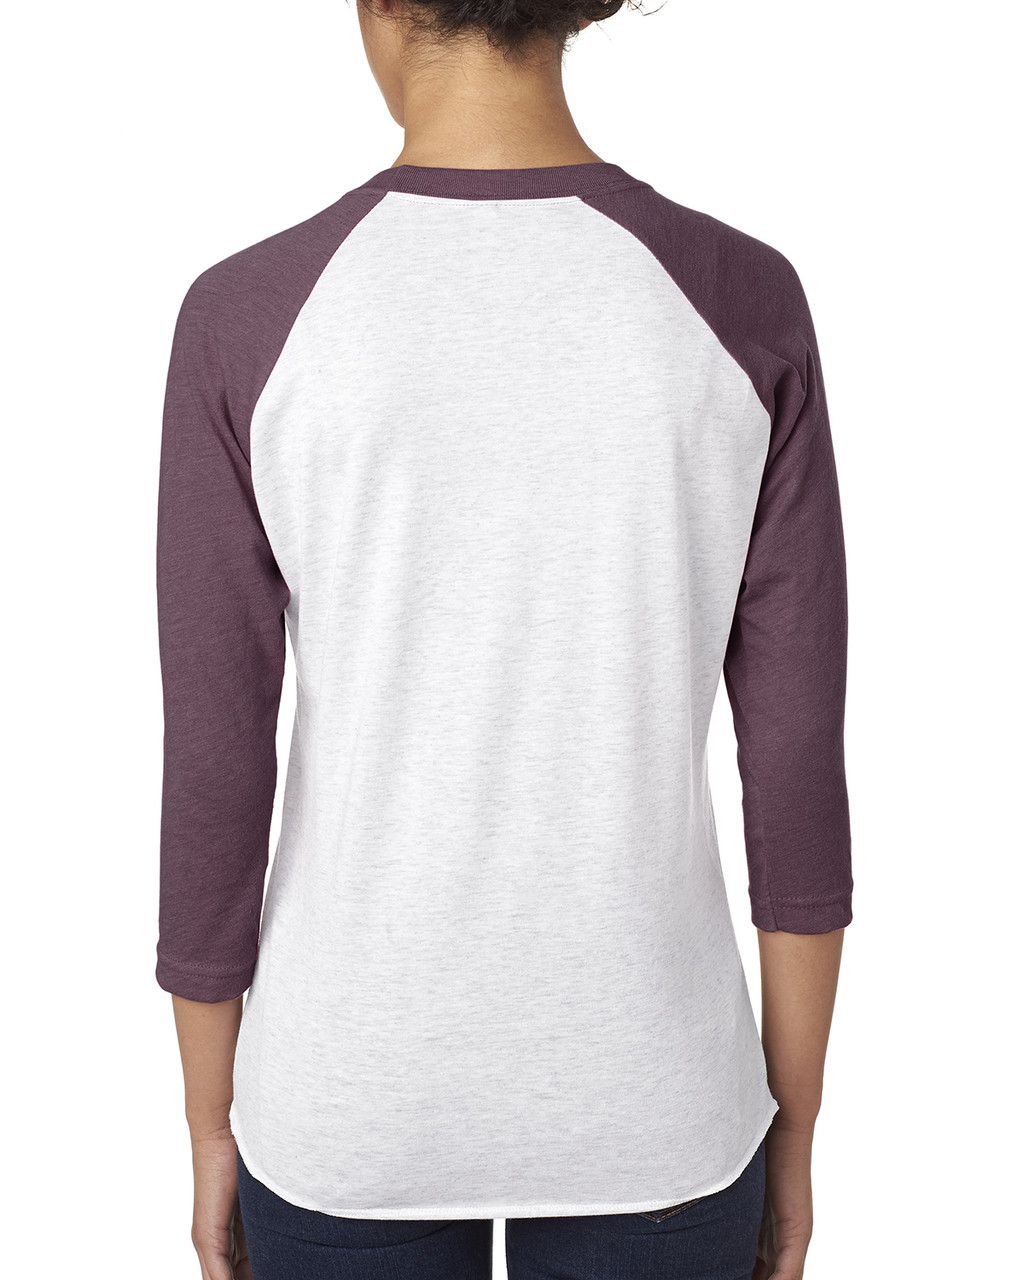 Vintage Purple/Heather White - back 6051 Next Level Unisex Tri-Blend 3/4-Sleeve Raglan Tee | Blankclothing.ca